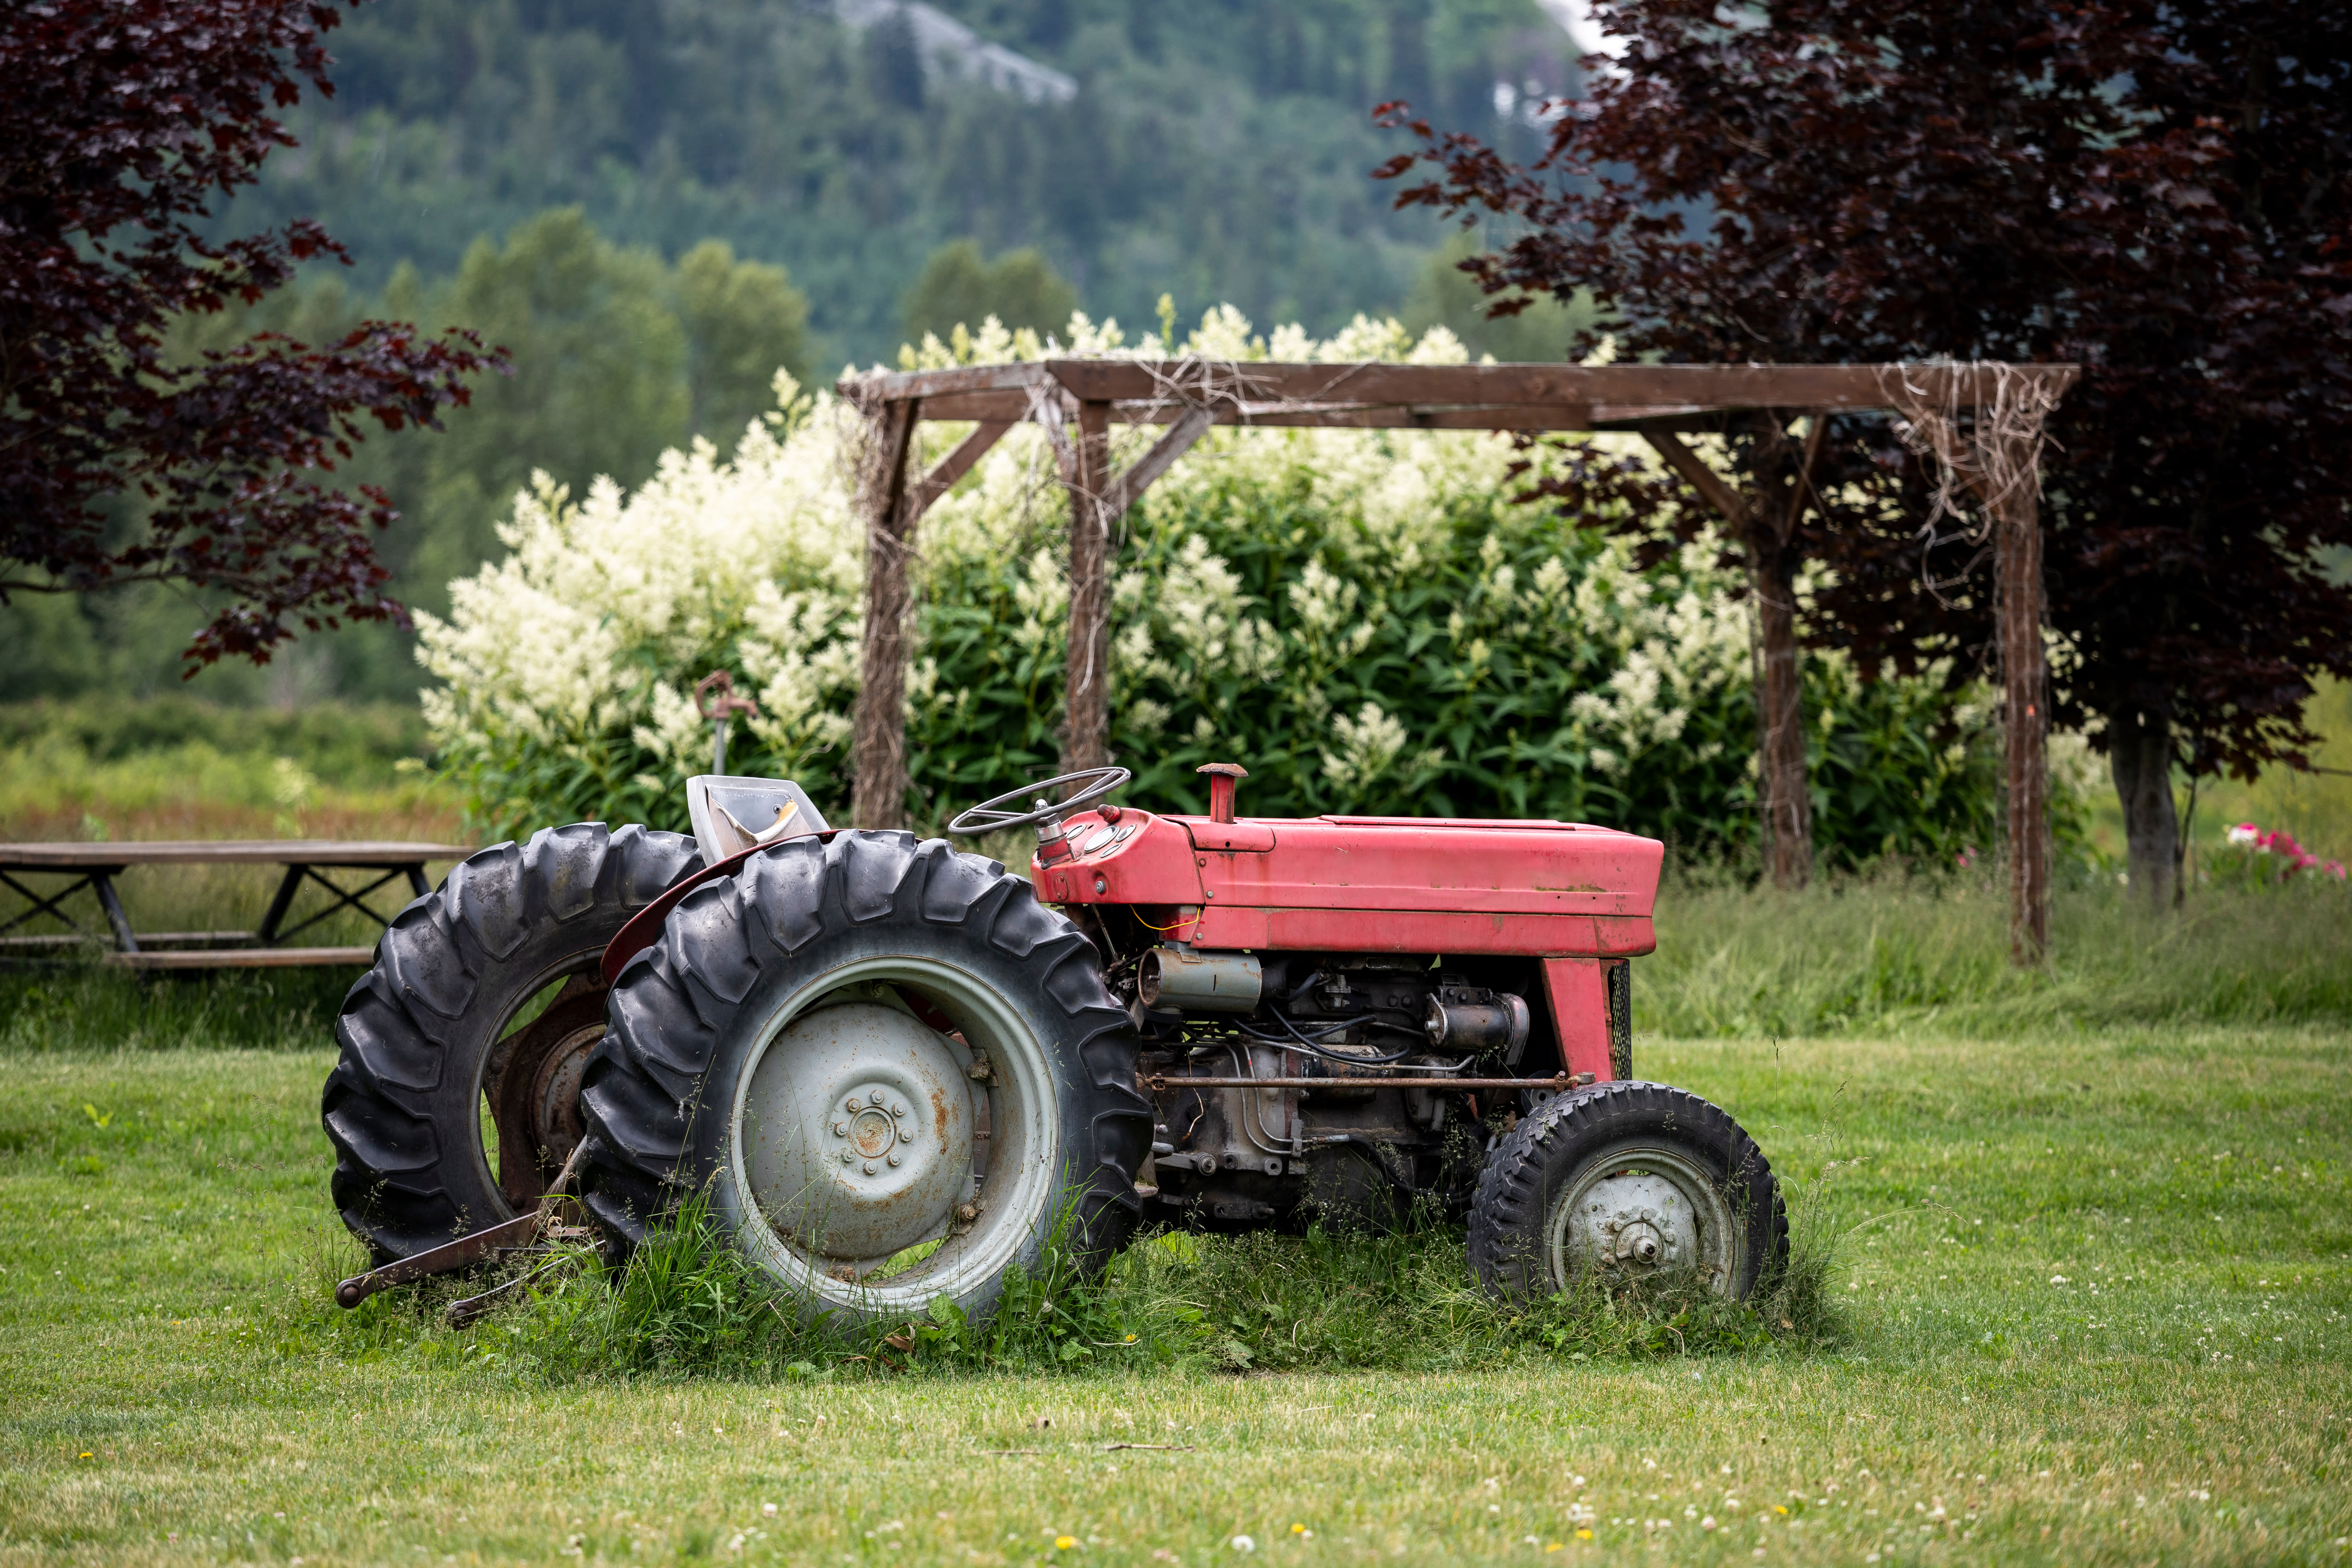 Red Tractor Parked on Grassy Lawn with Semi Pneumatic Tires